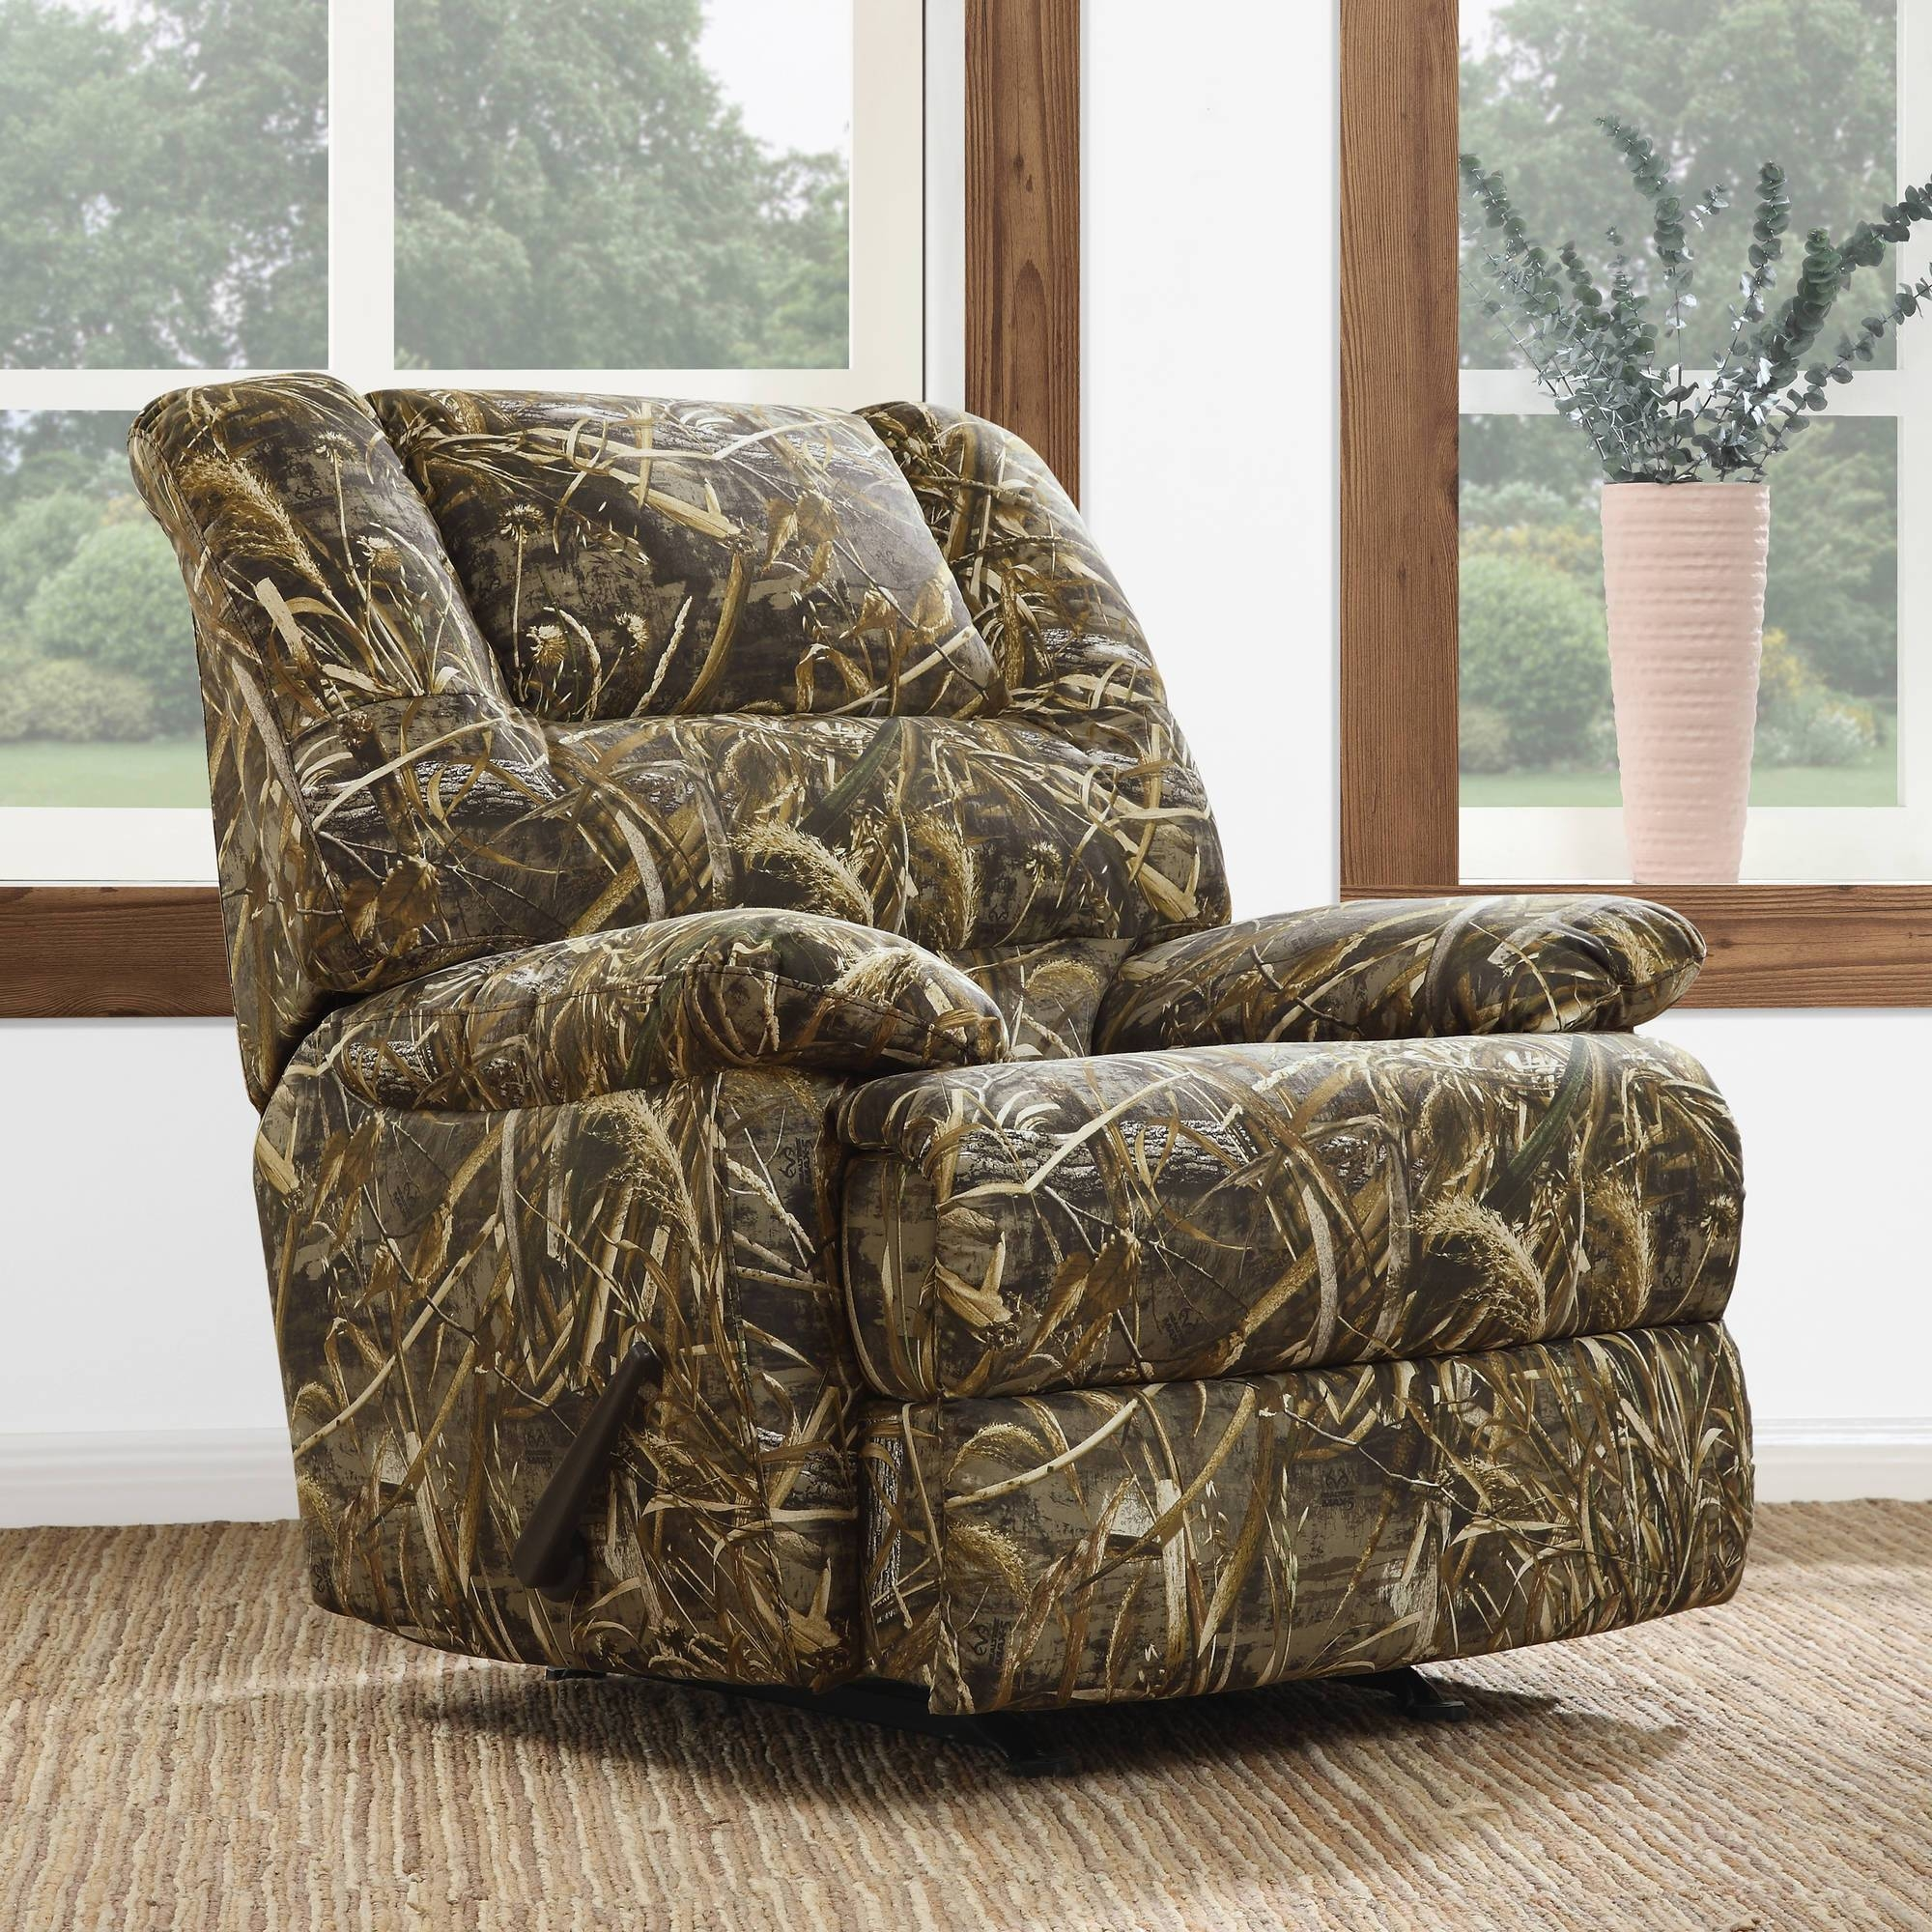 Dorel Living Realtree Camouflage Deluxe Recliner  Camo   Walmart with Camo  Reclining Sofas  Image15 Best Ideas of Camo Reclining Sofas. Realtree Camo Living Room Furniture. Home Design Ideas